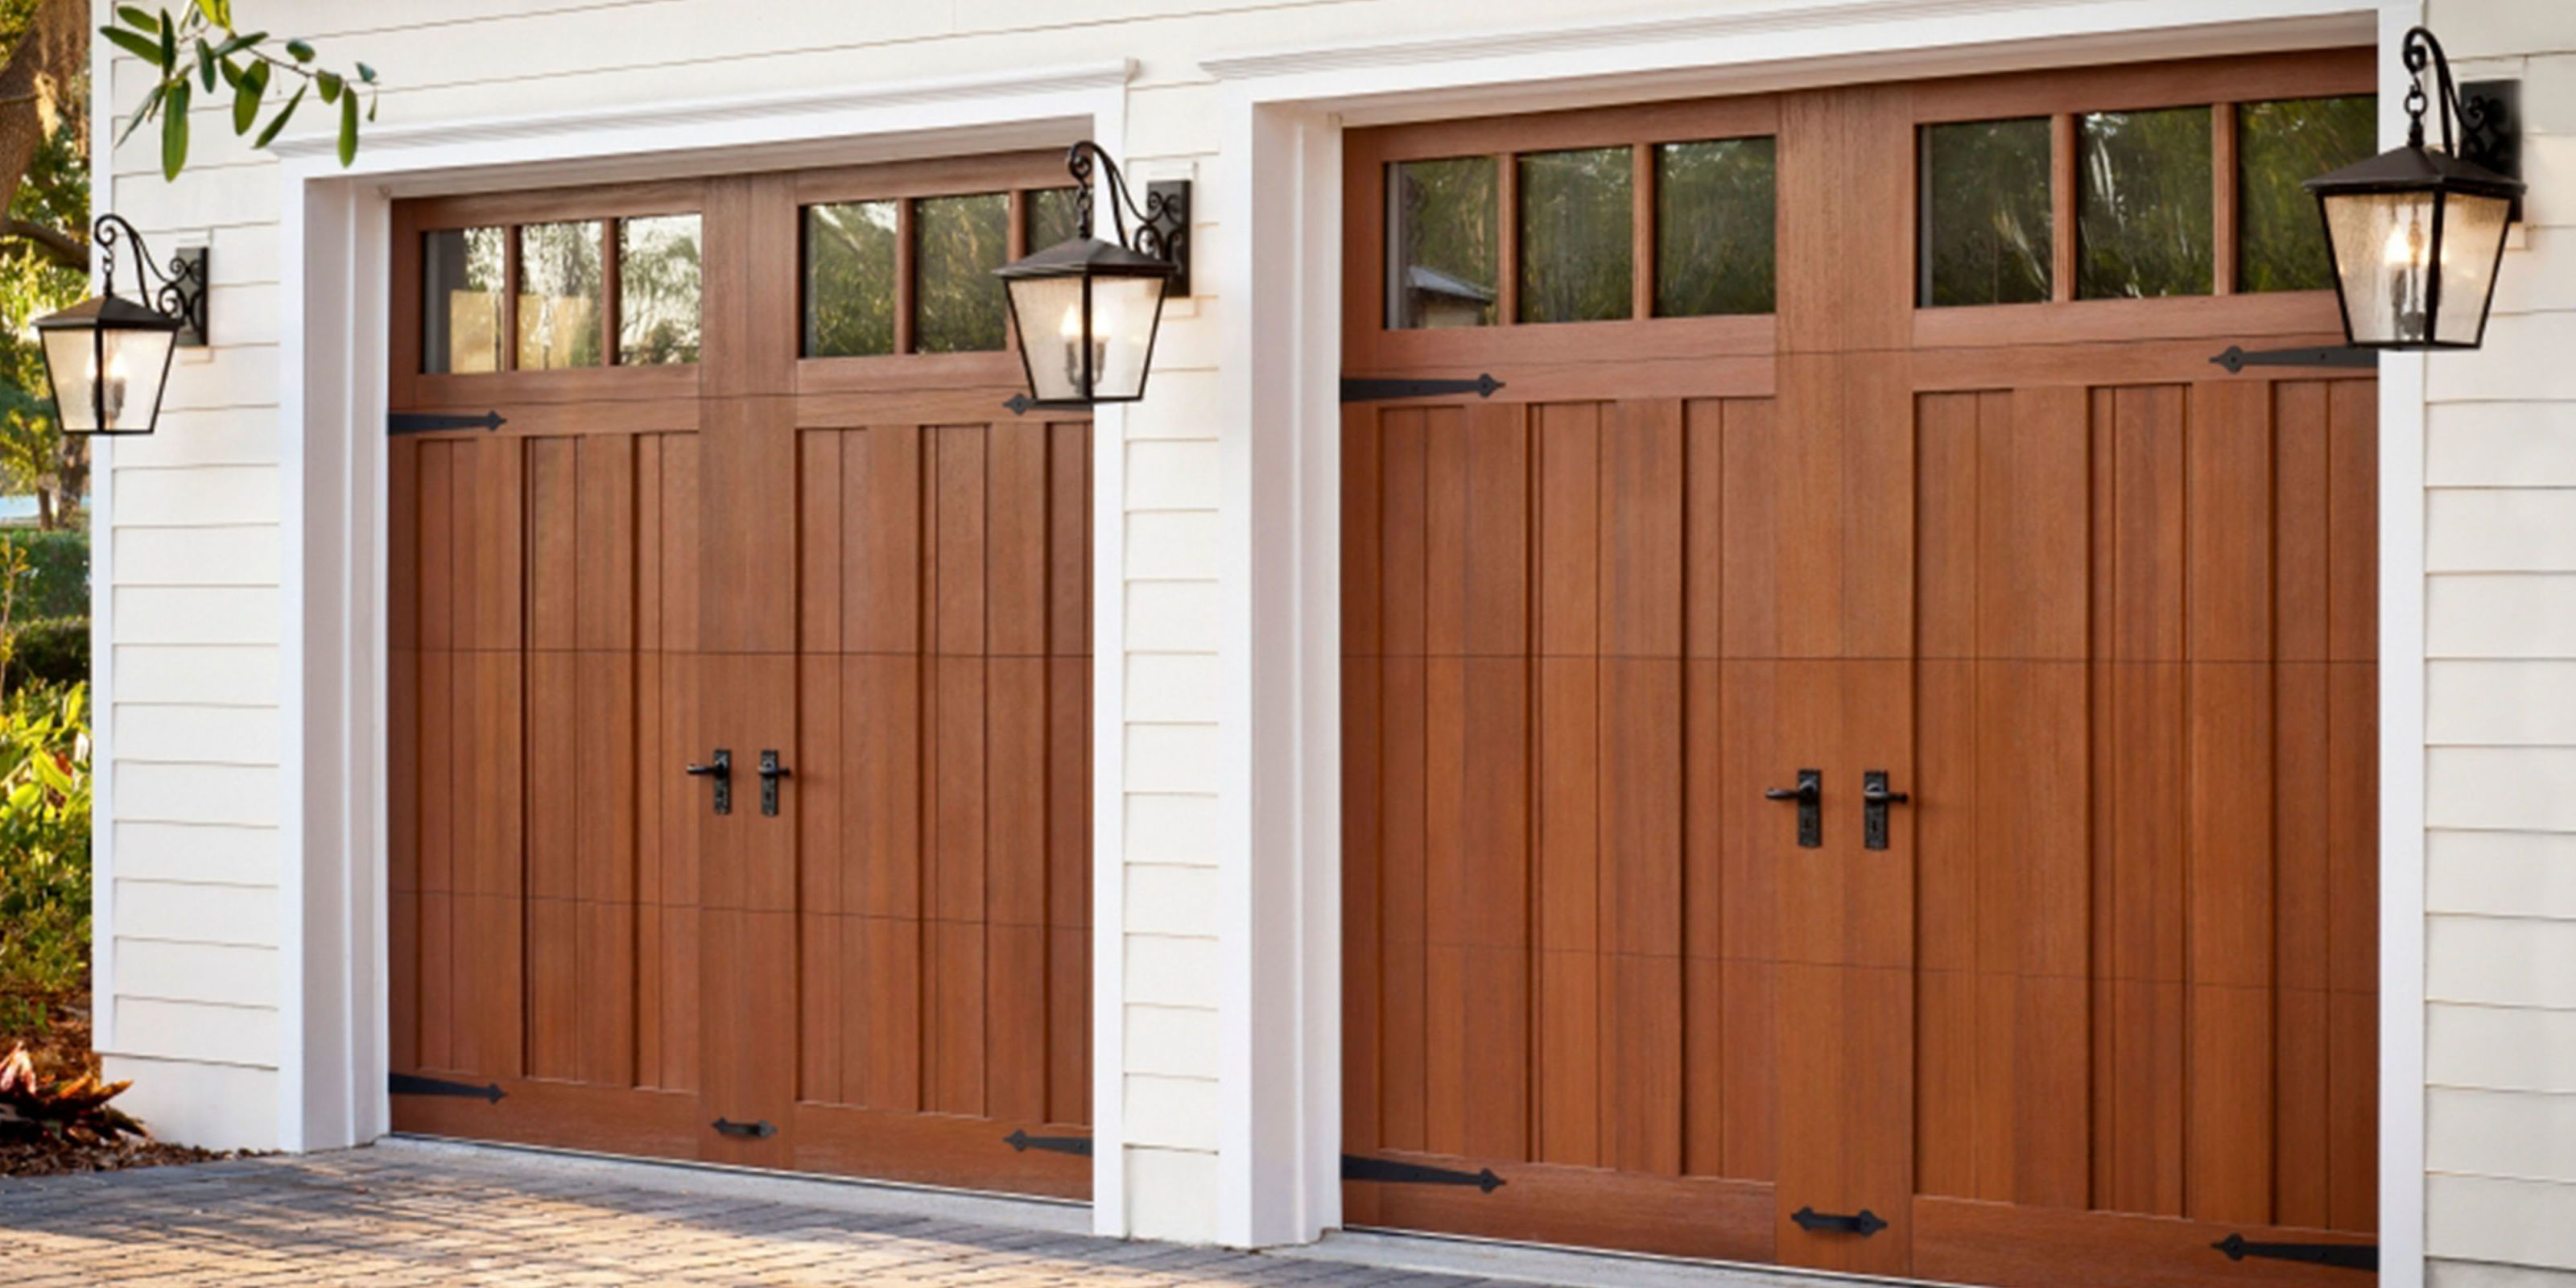 image & Clopay Door Imagination System Review - How To Choose a Garage Door